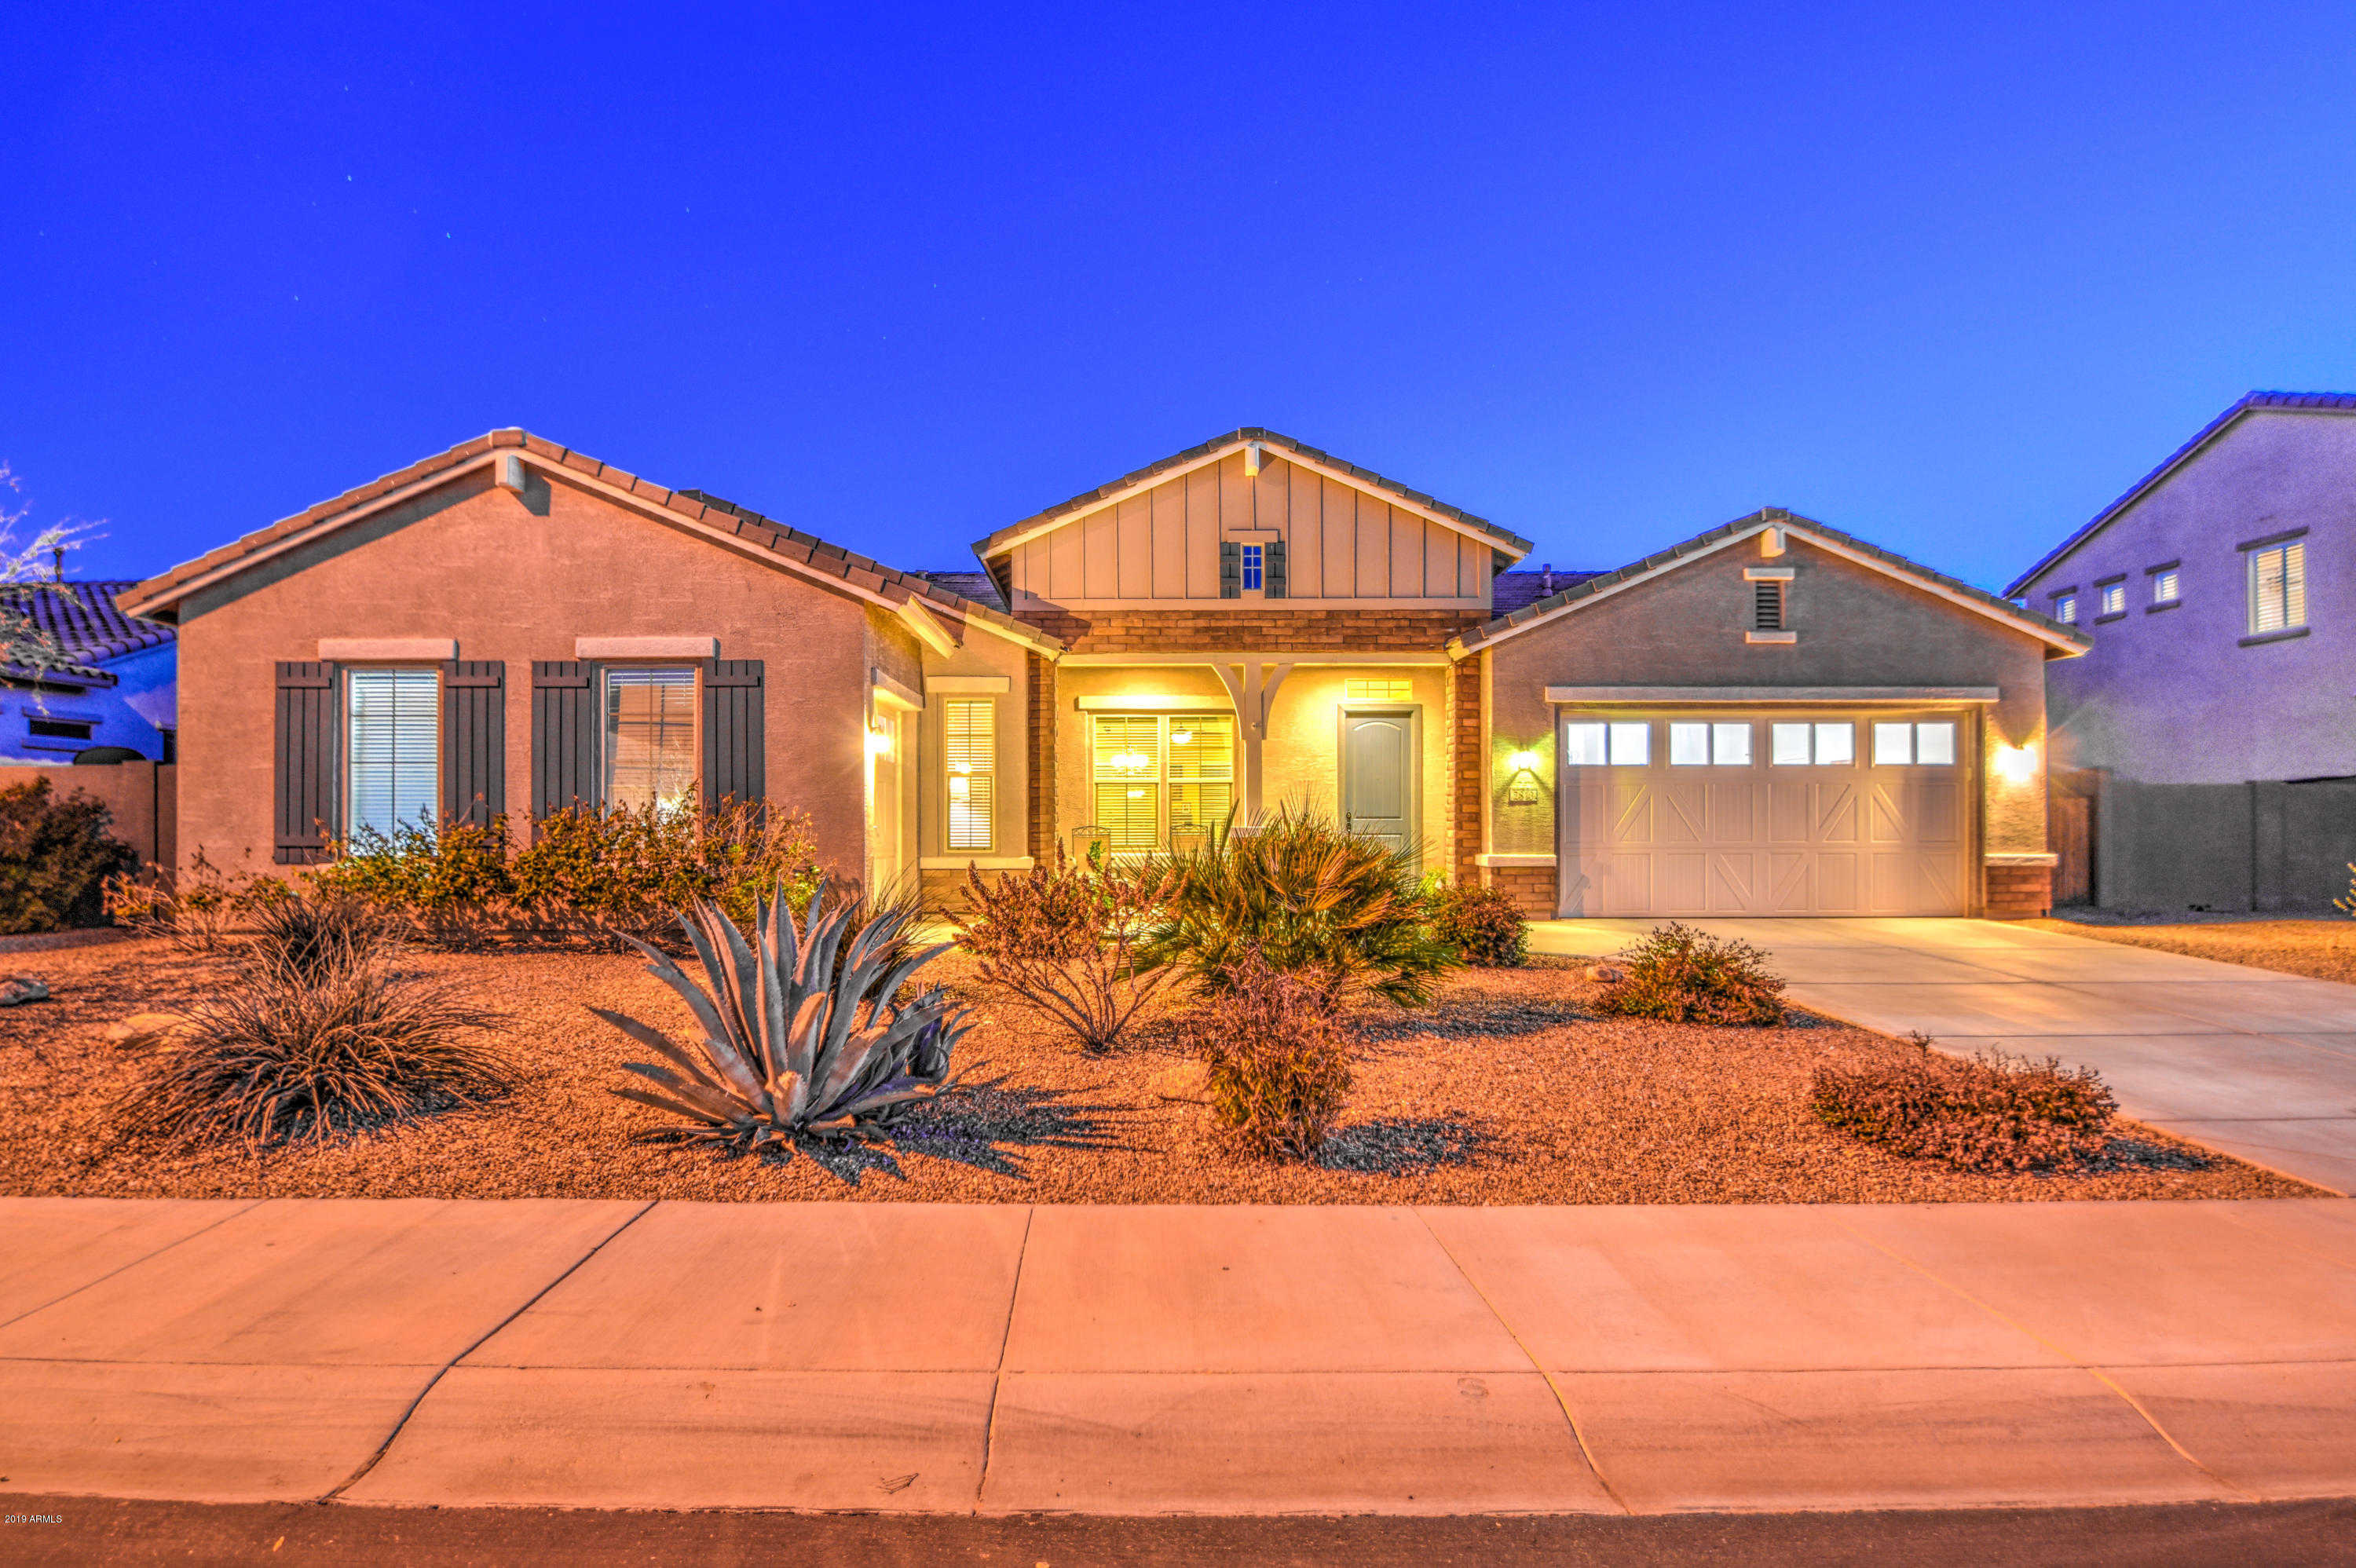 $500,000 - 4Br/3Ba - Home for Sale in 164th And Cloud Solace, Gilbert